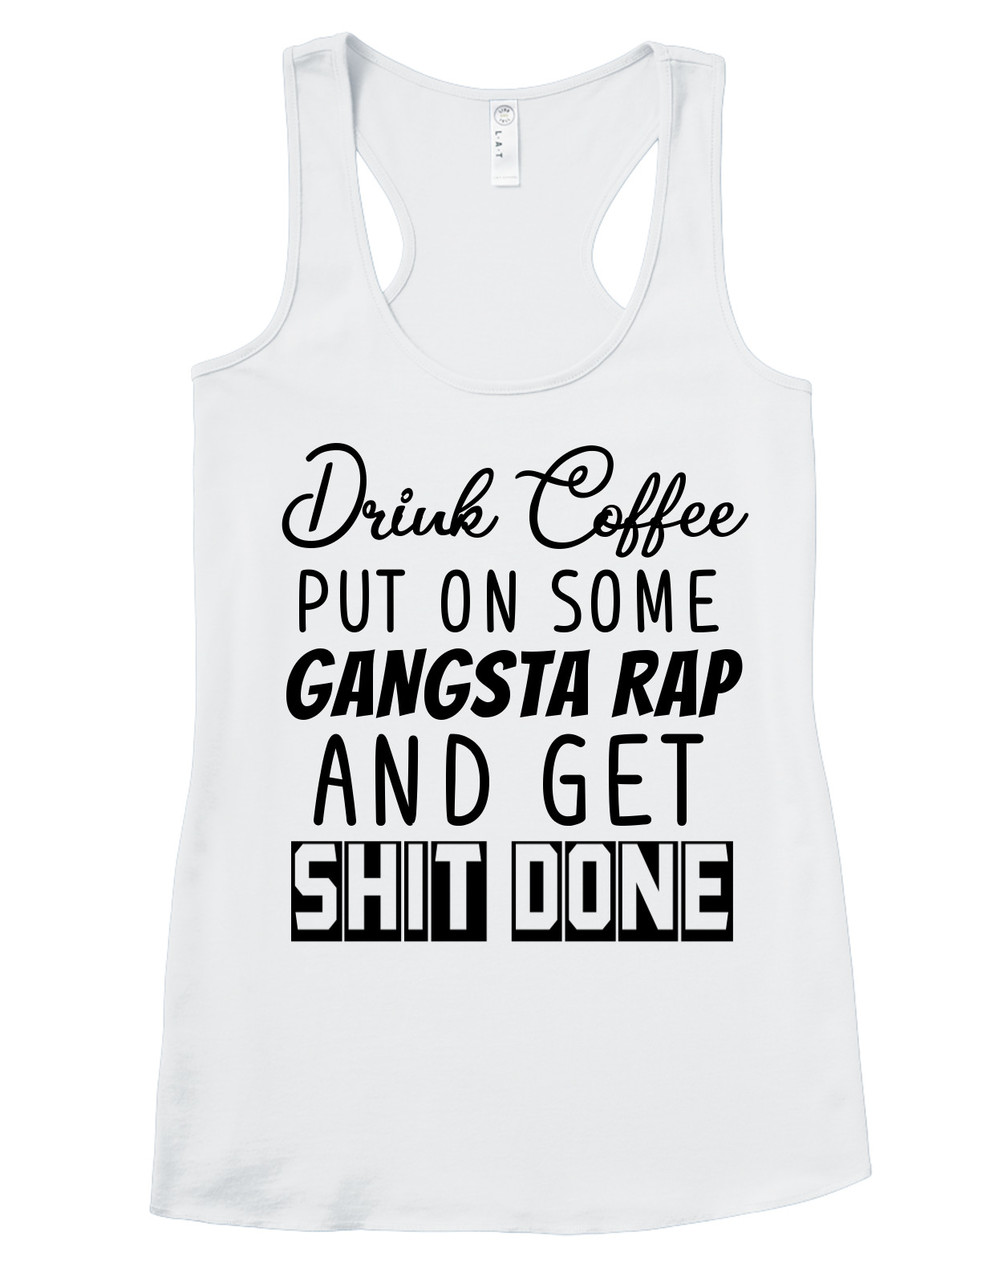 2994449403e Coffee and Rap - Ladies Adult Shirt or Tank Top